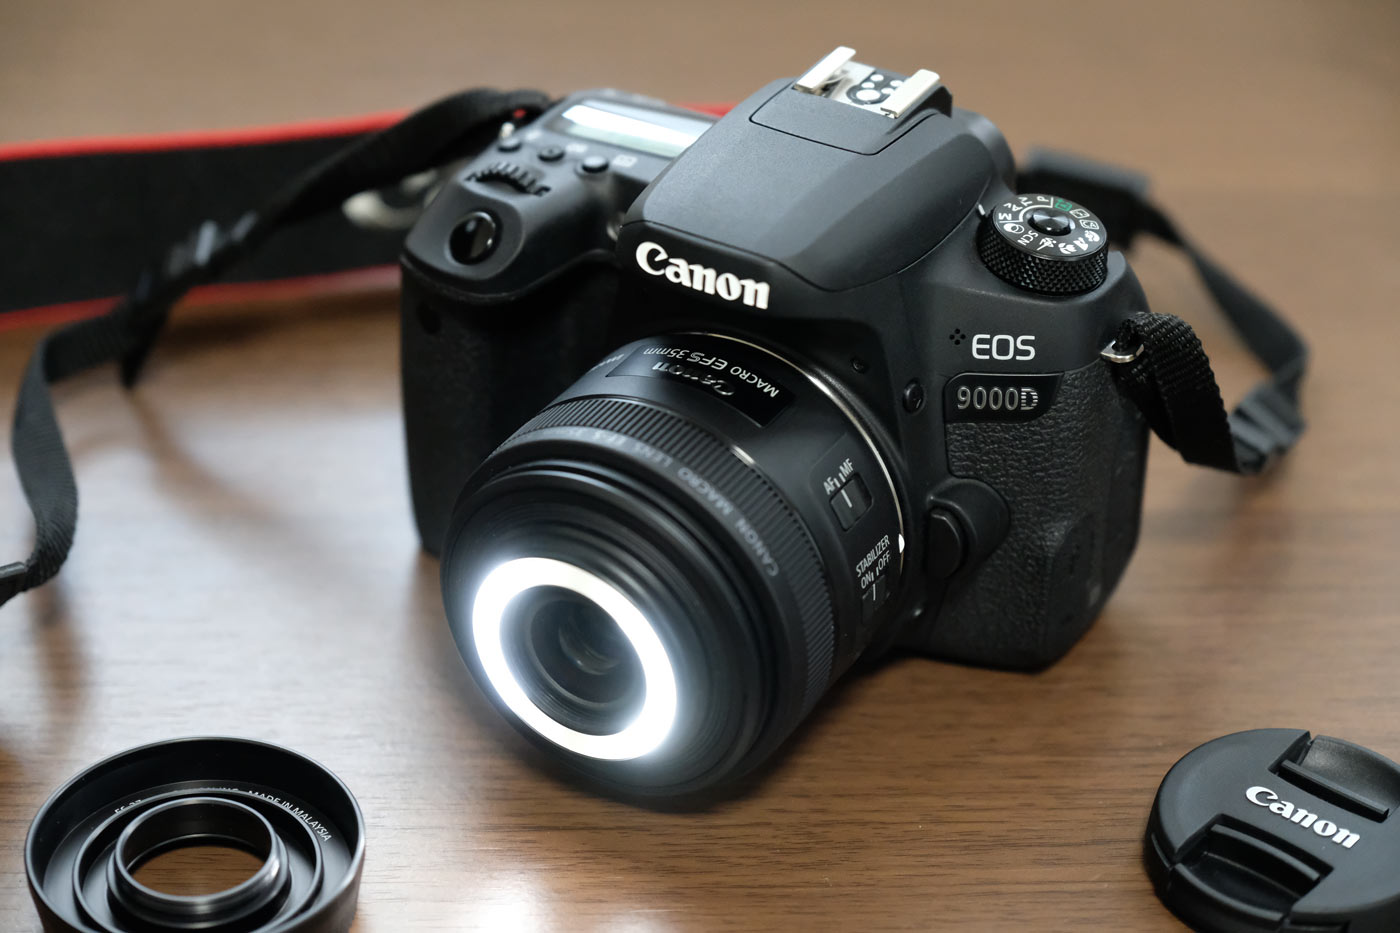 EF-S35mm F2.8 マクロ IS STM LEDライト